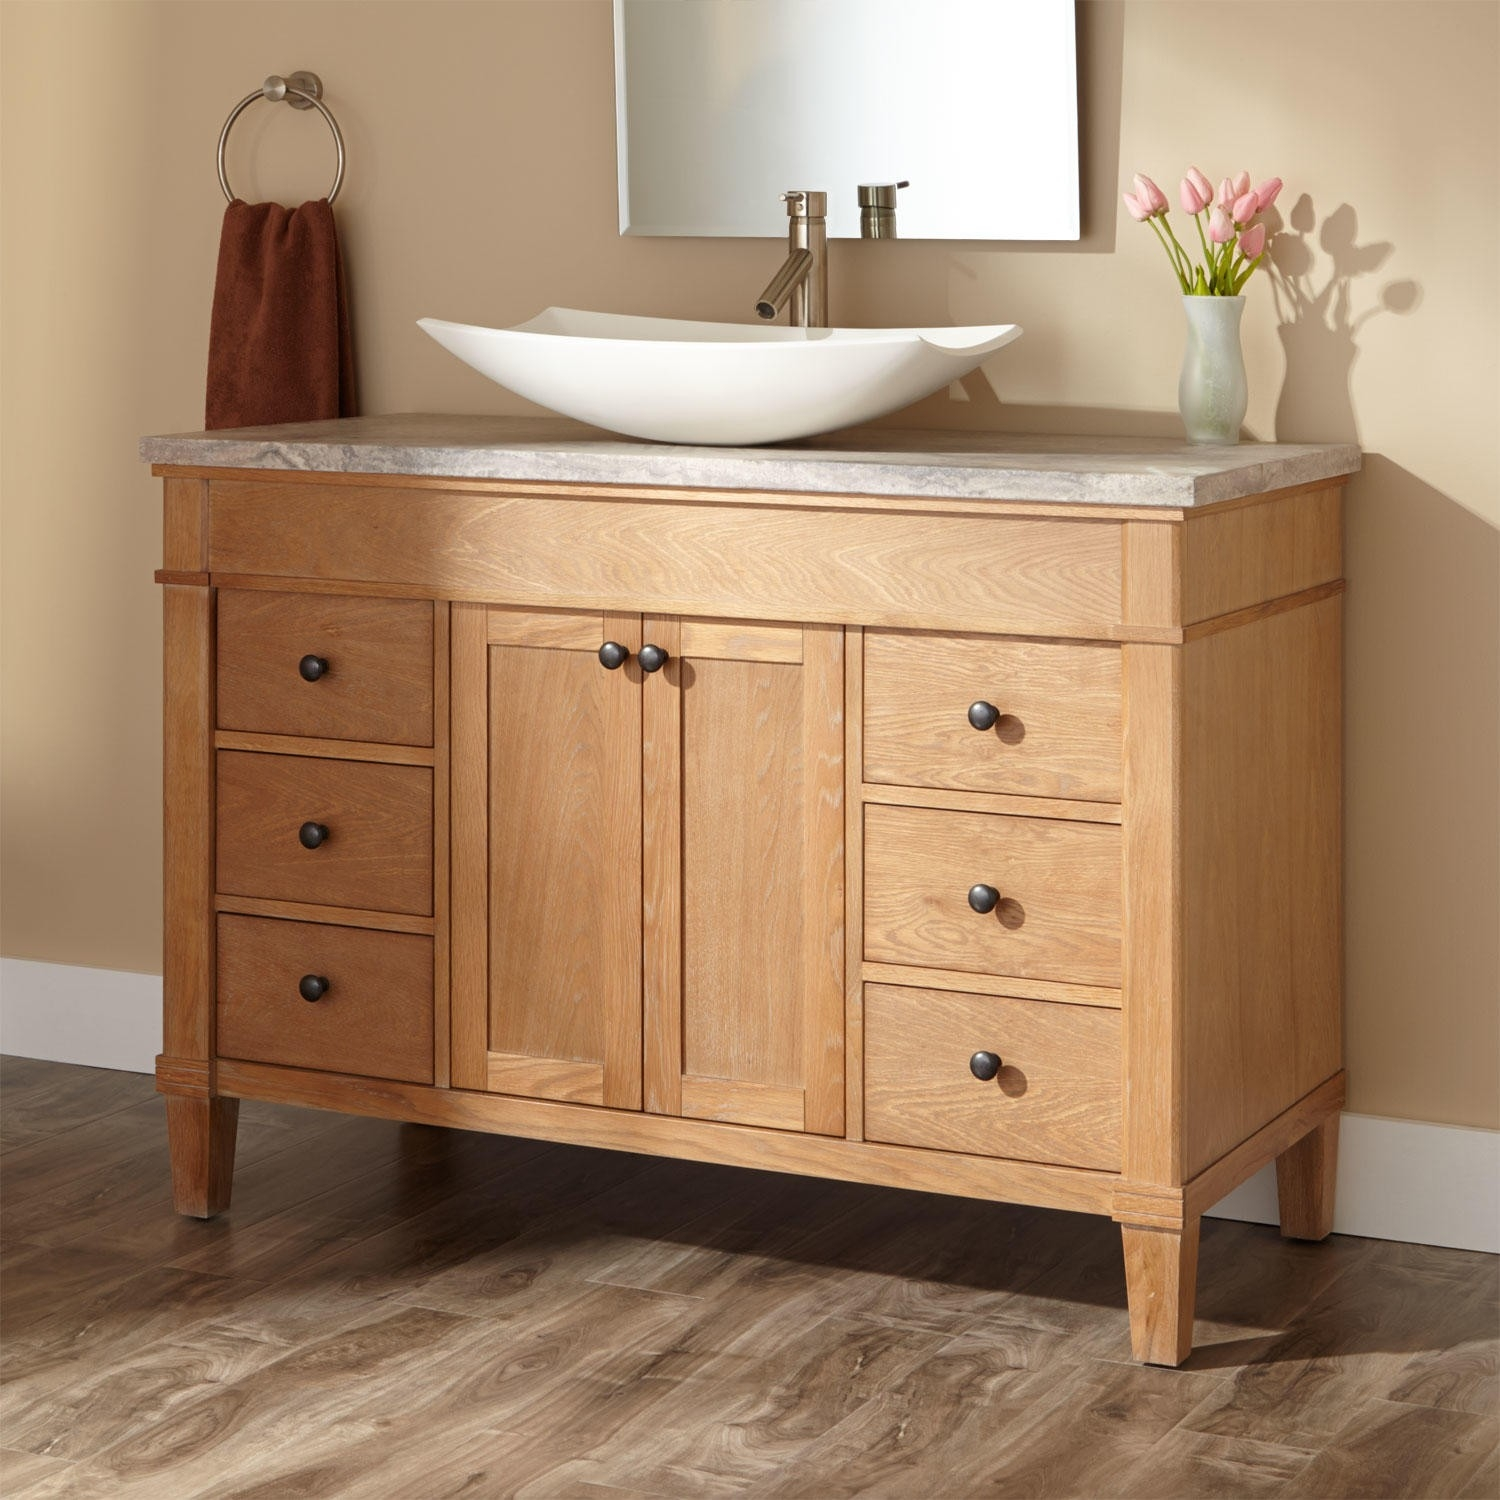 Bathroom Vessel Sink And Cabinet